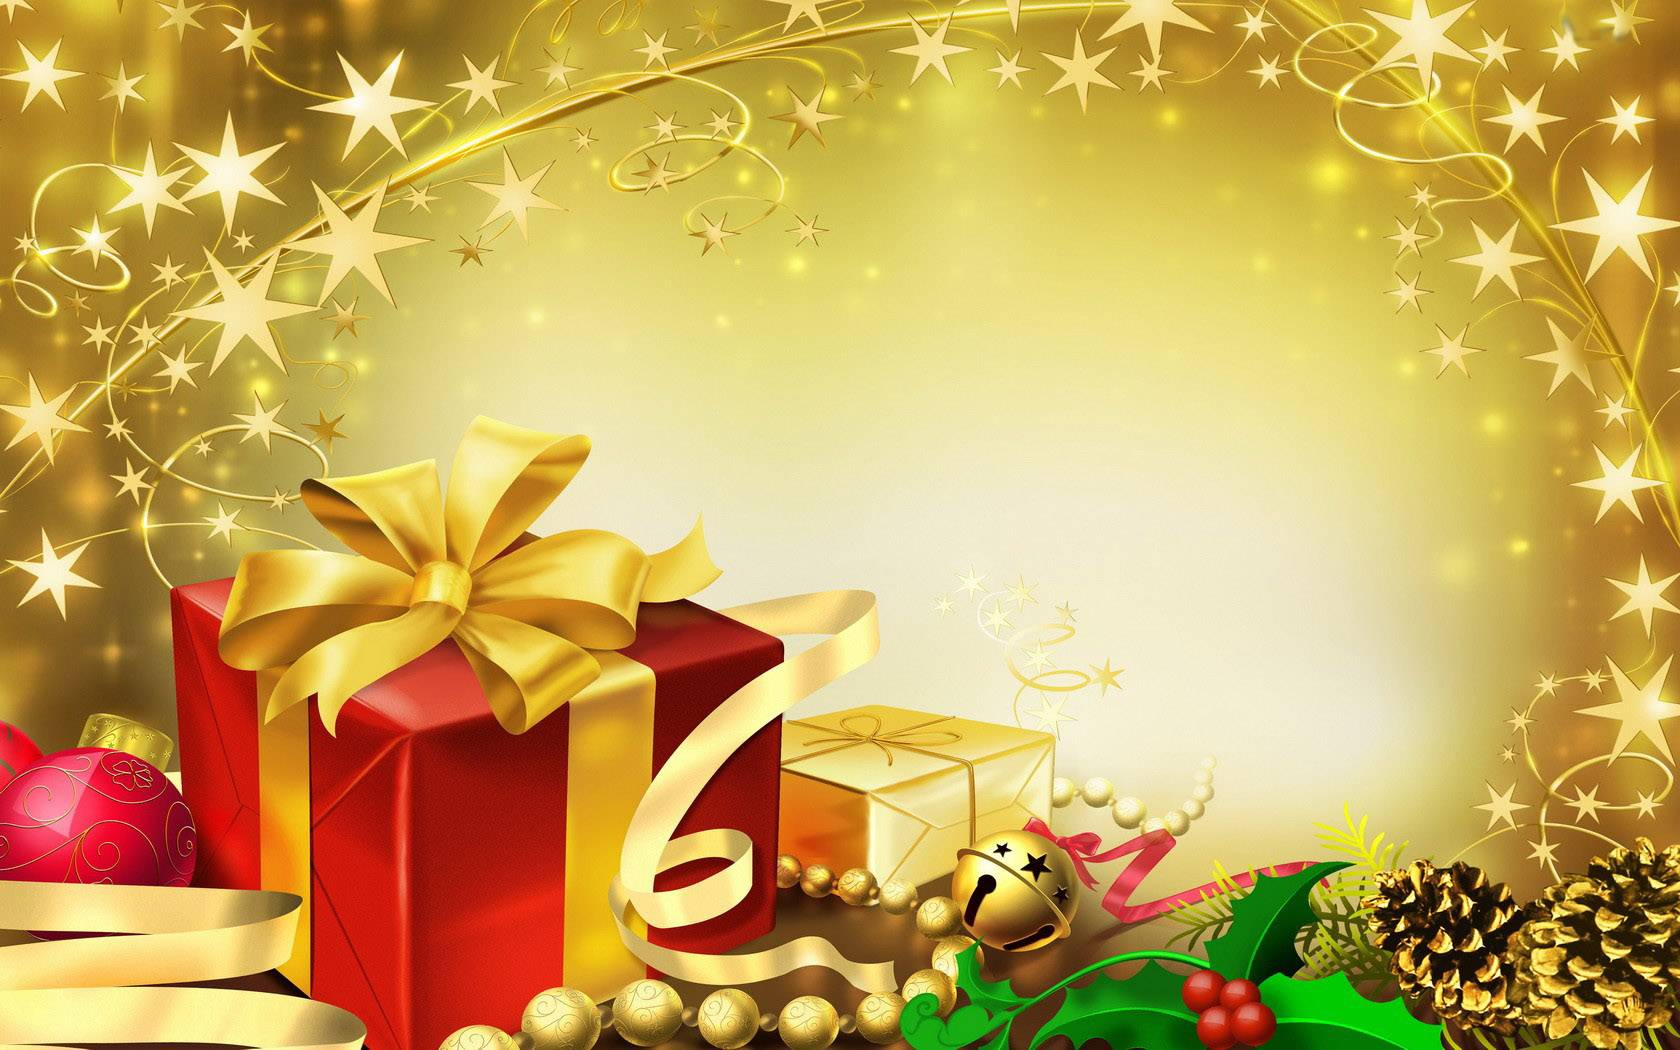 Christmas Beautiful Backgrounds Content Gifts1 Wallpapers For